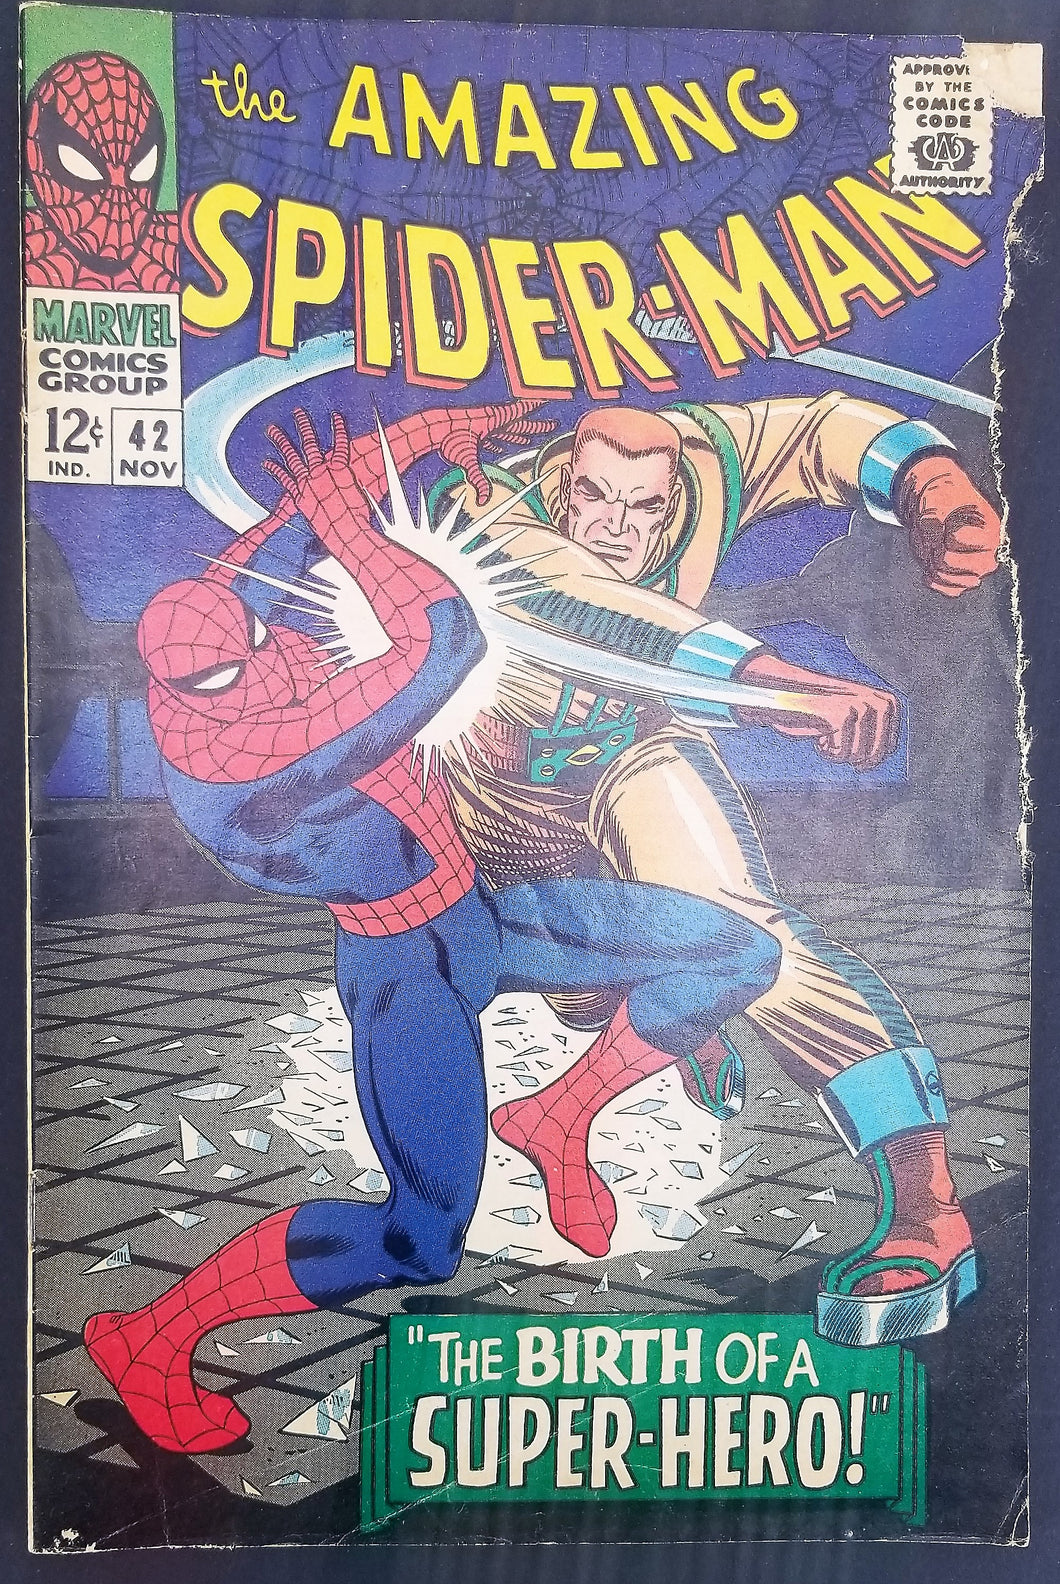 The Amazing Spiderman No. 42,